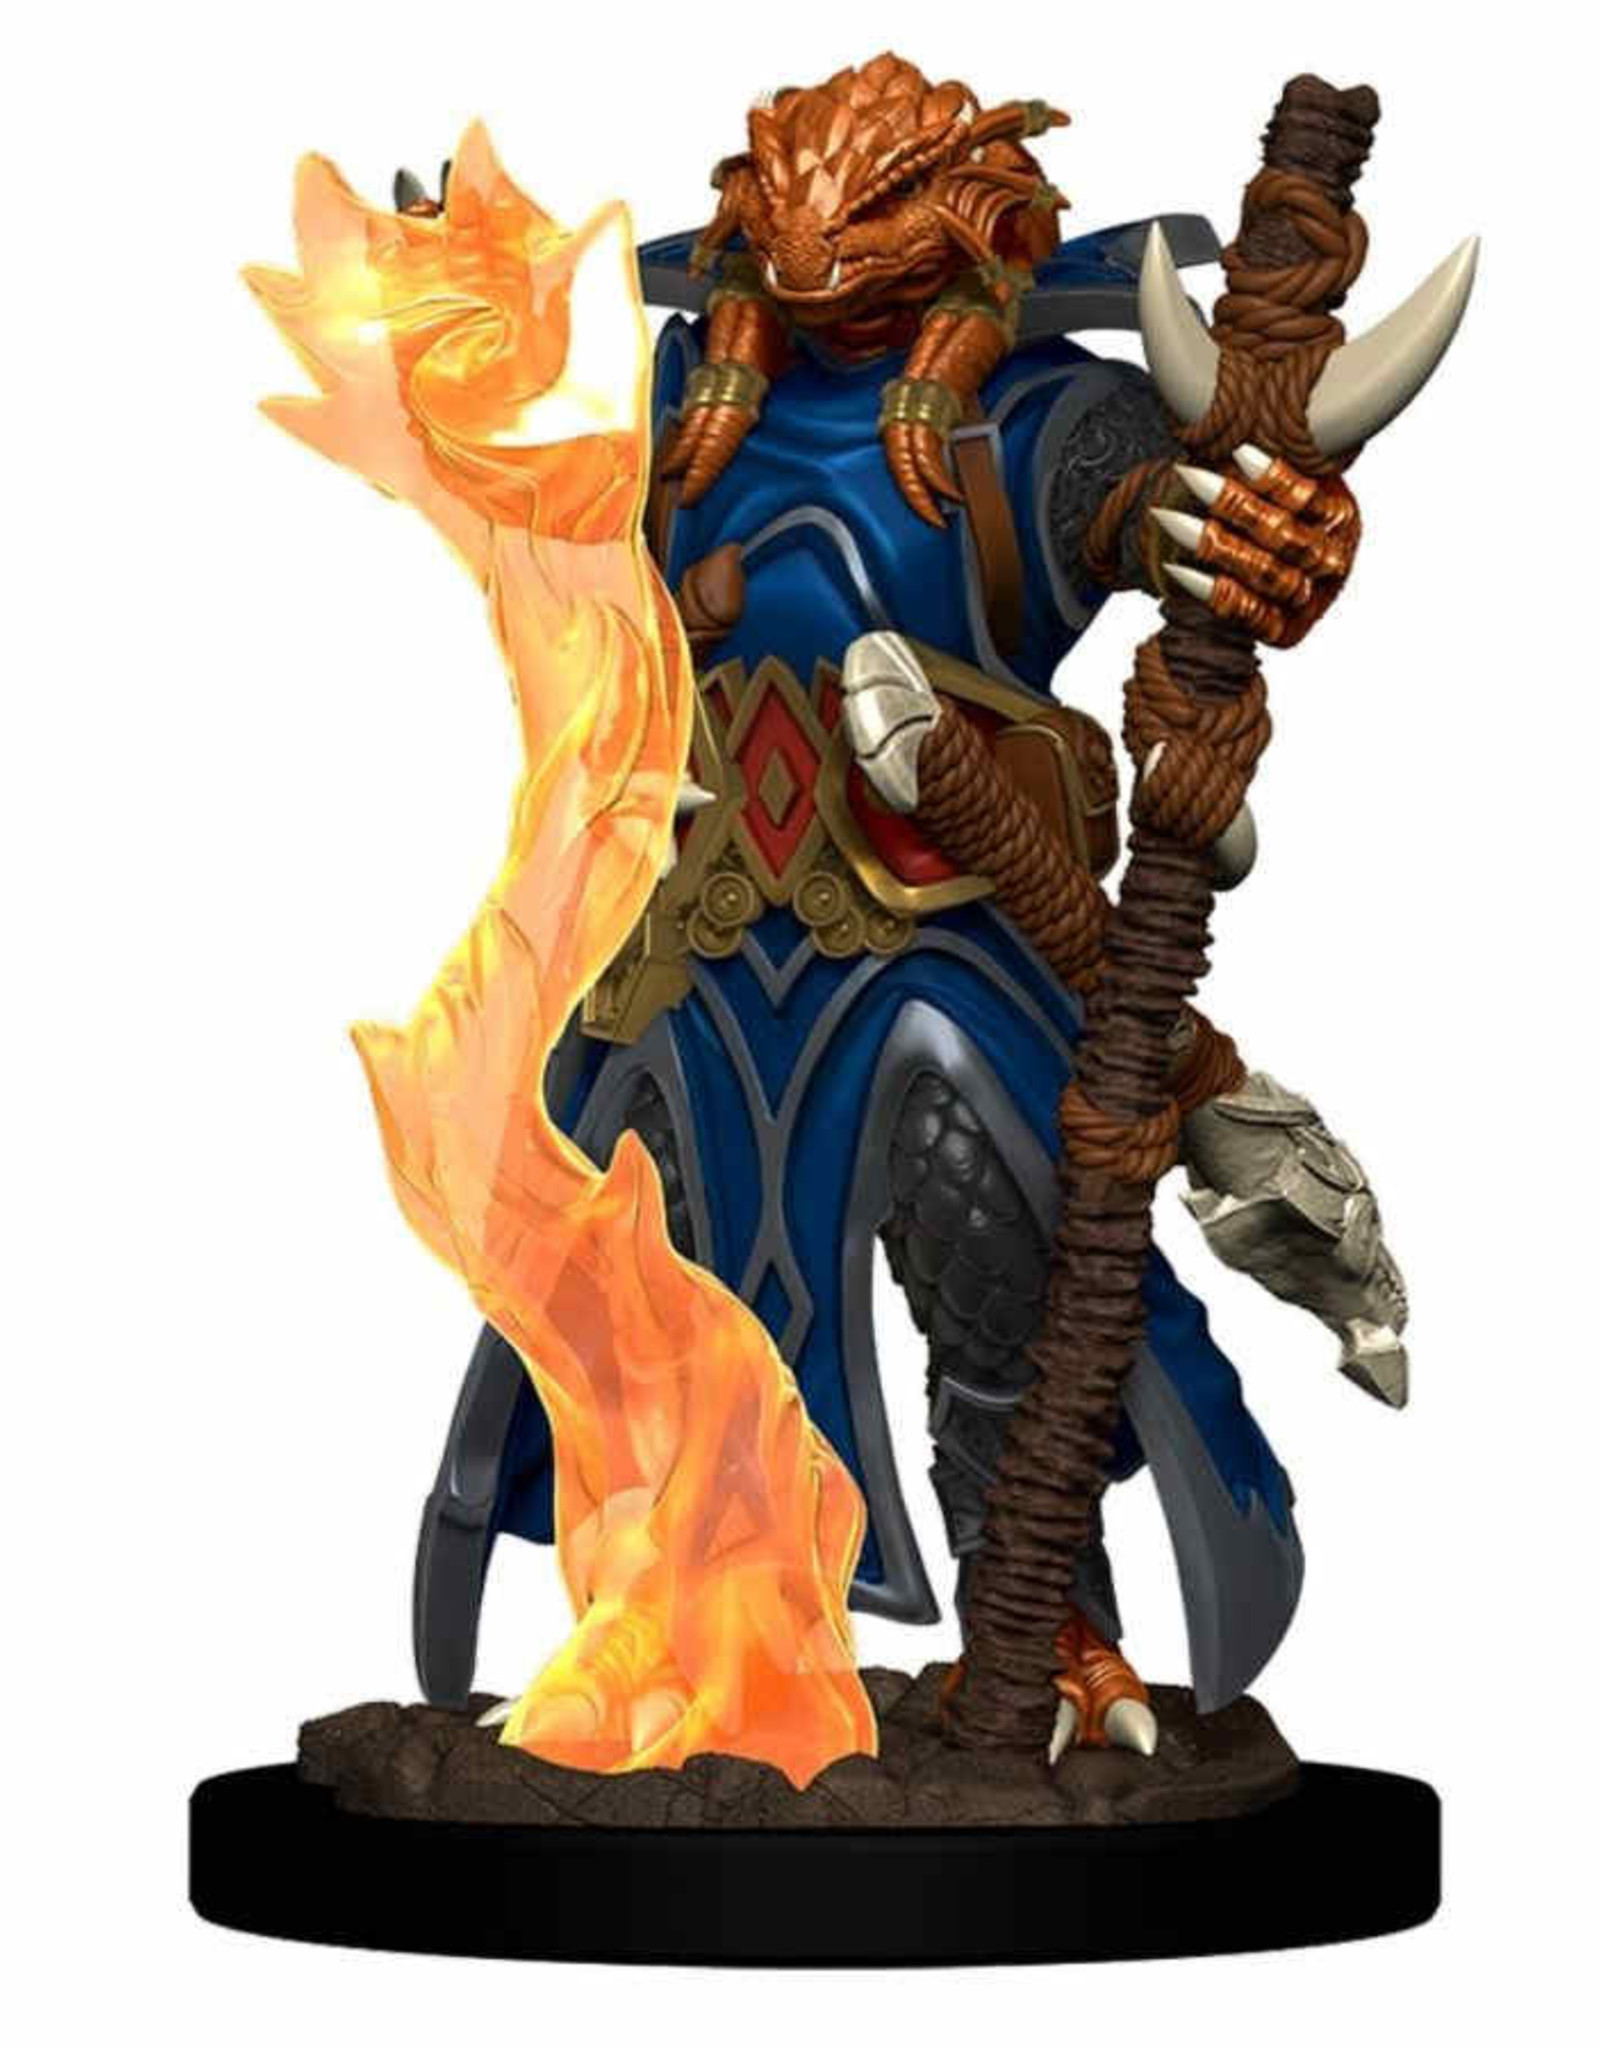 Wizkids Dungeons And Dragons: Icons Of The Realm Premium Figure (wave 4): Dragonborn Sorrocer